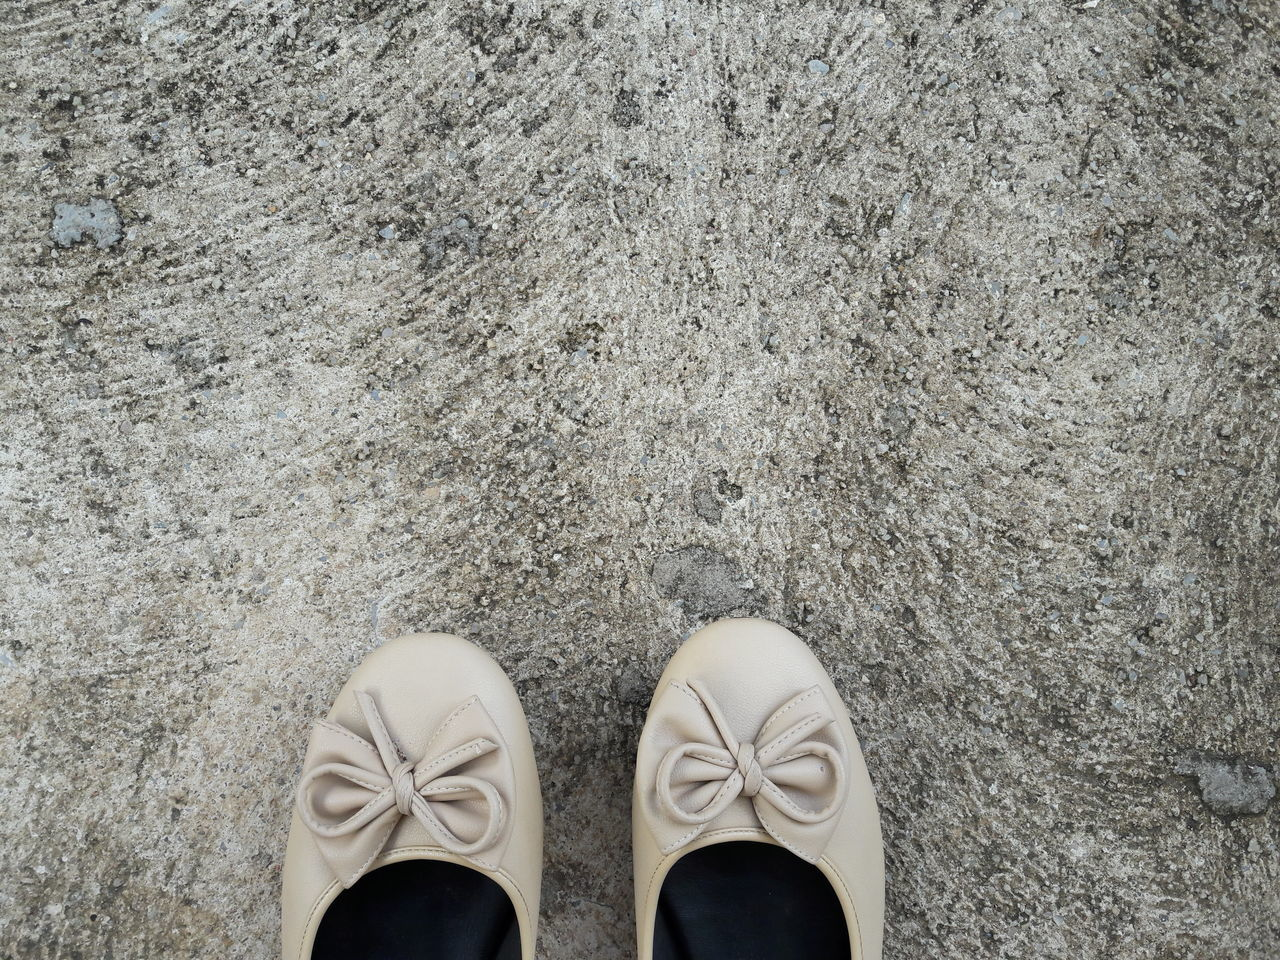 High Angle View Of Sandals On Concrete Floor